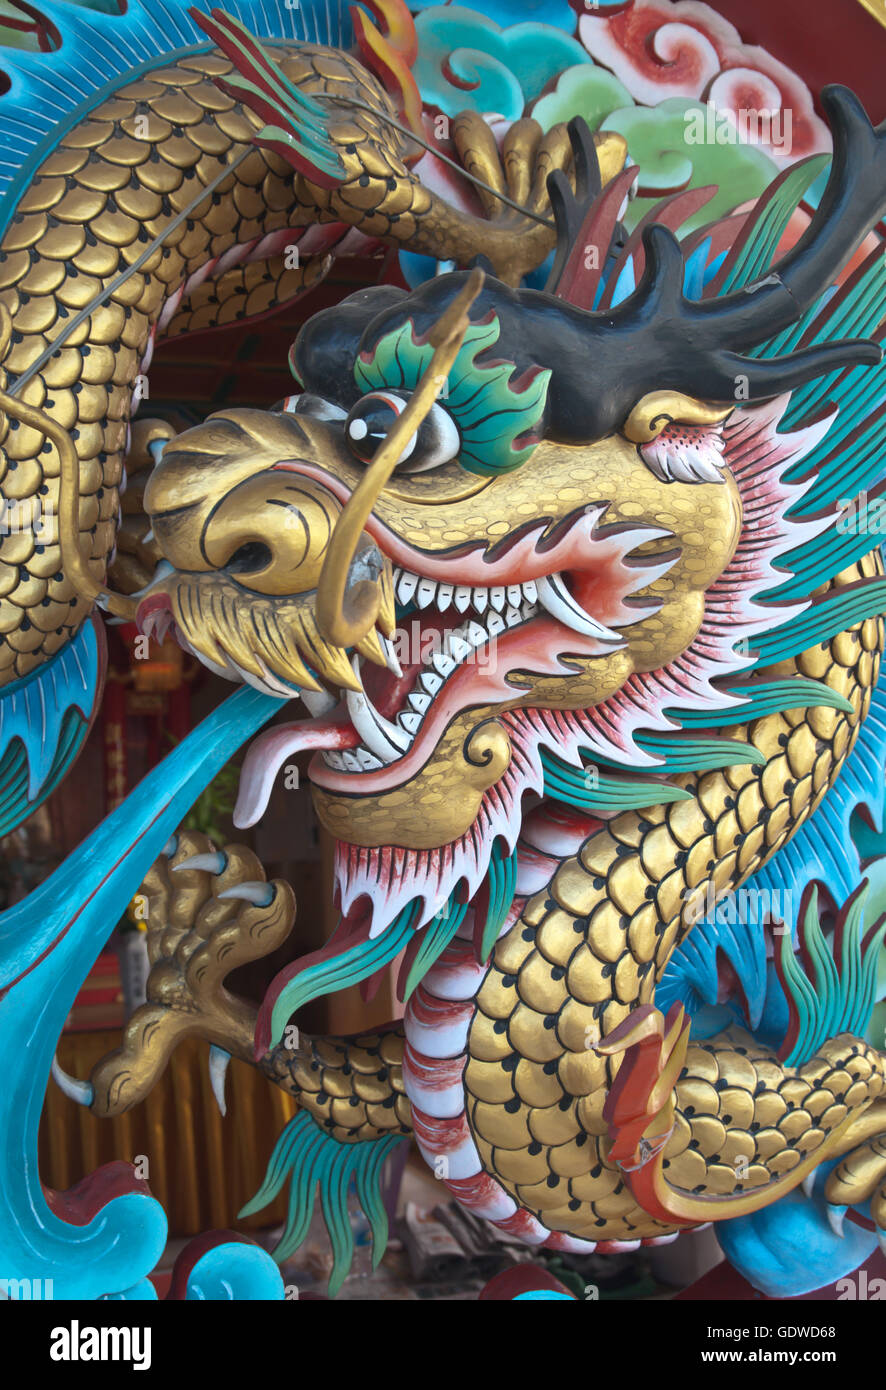 Symbolism of the Mystical Blue Dragon in Chinese Astrology